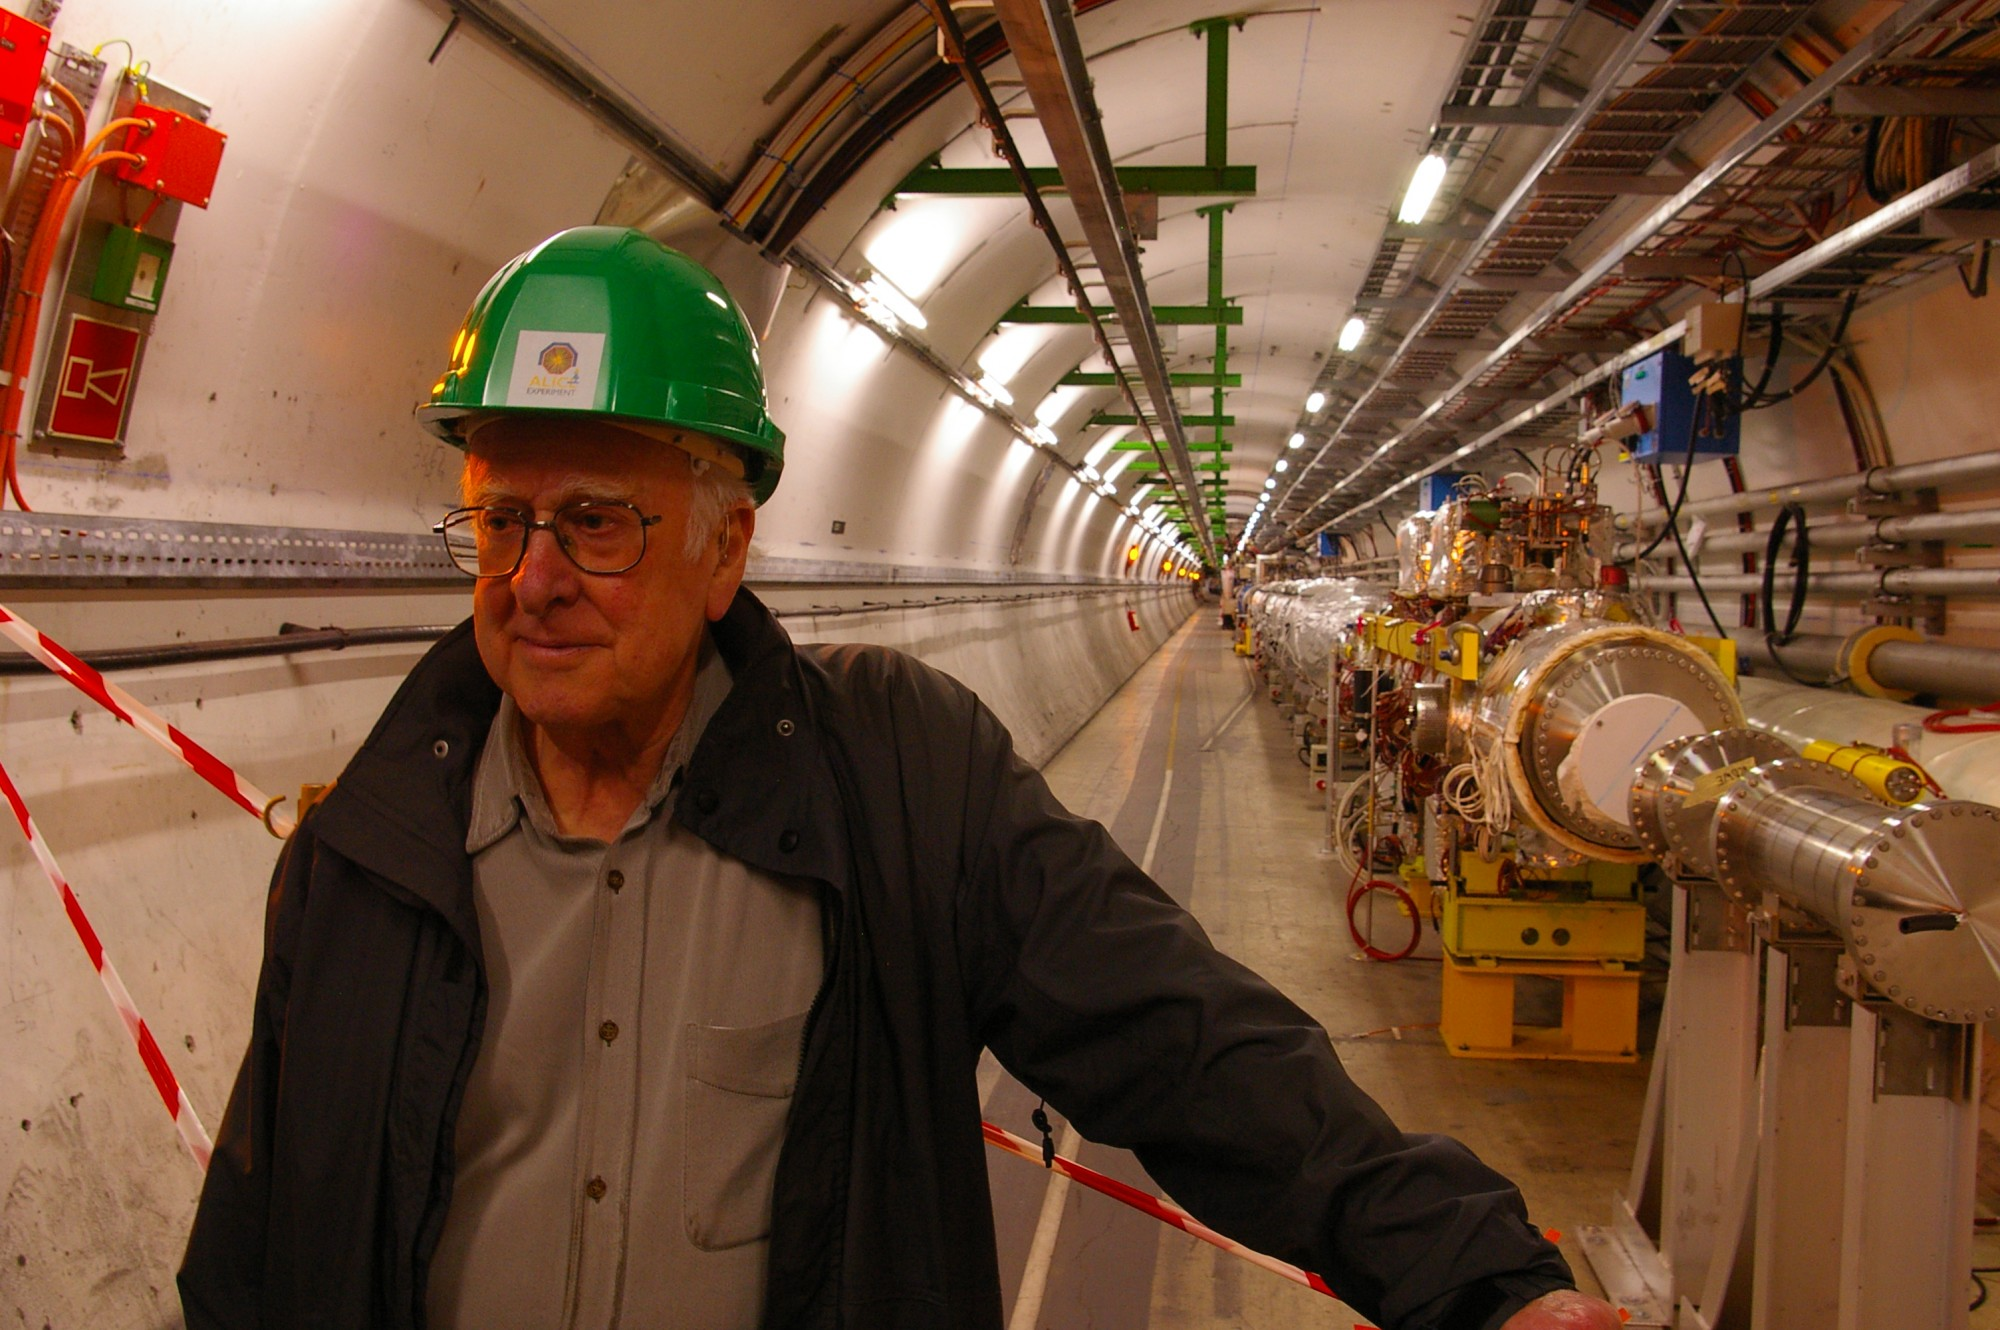 Peter Higgs in the long straight section of the Large Hadron Collider tunnel, just before the underground ALICE experimental hall. Photograph copyright Alan Walker, University of Edinburgh.